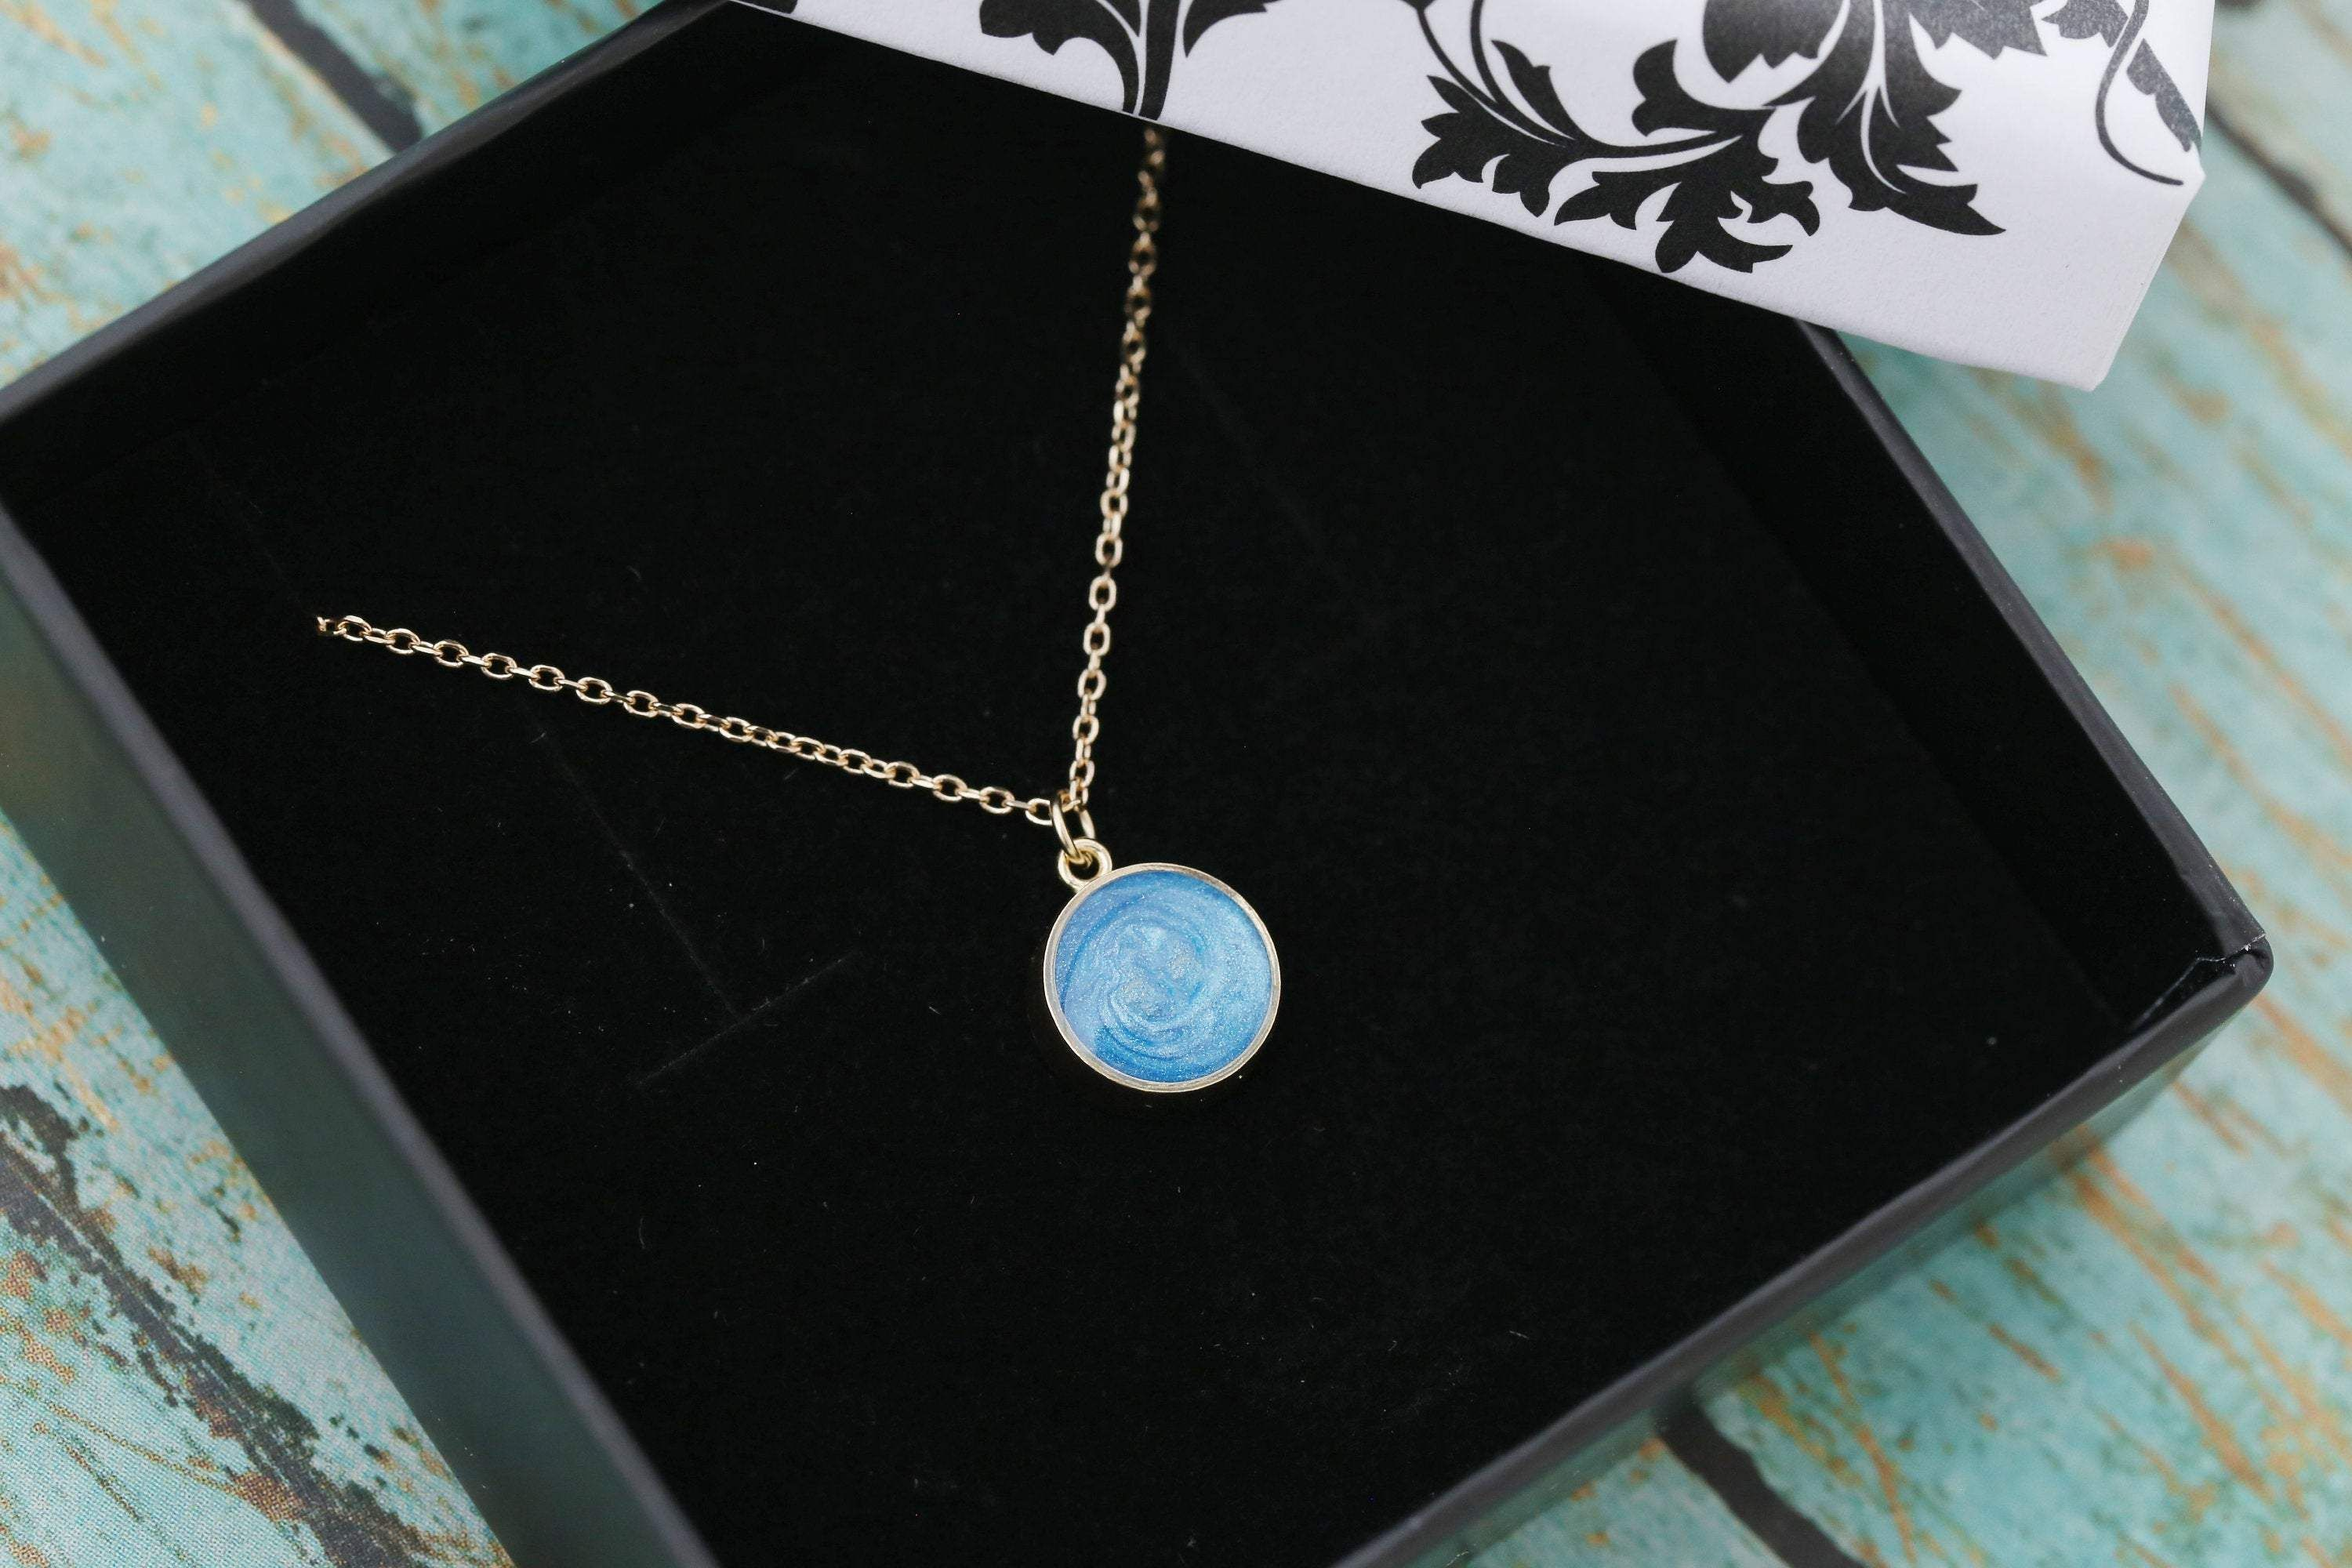 8mm 14k Gold Cremation Necklace